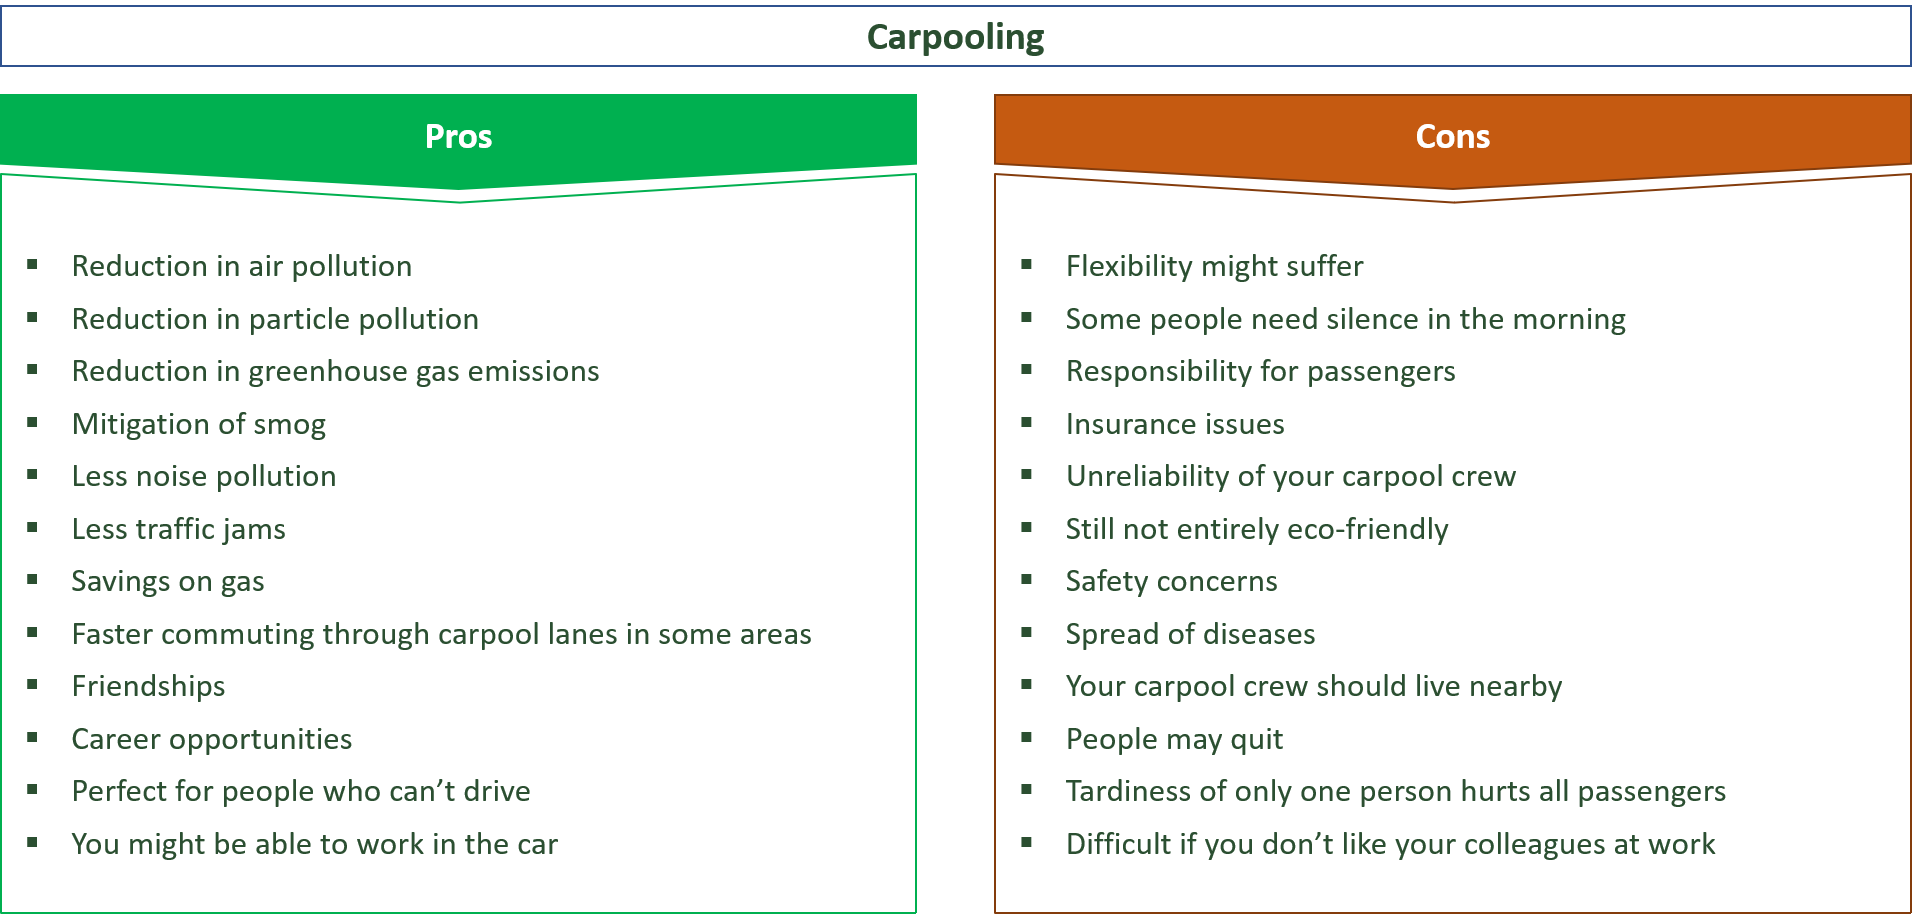 the advantages and downsides of carpooling